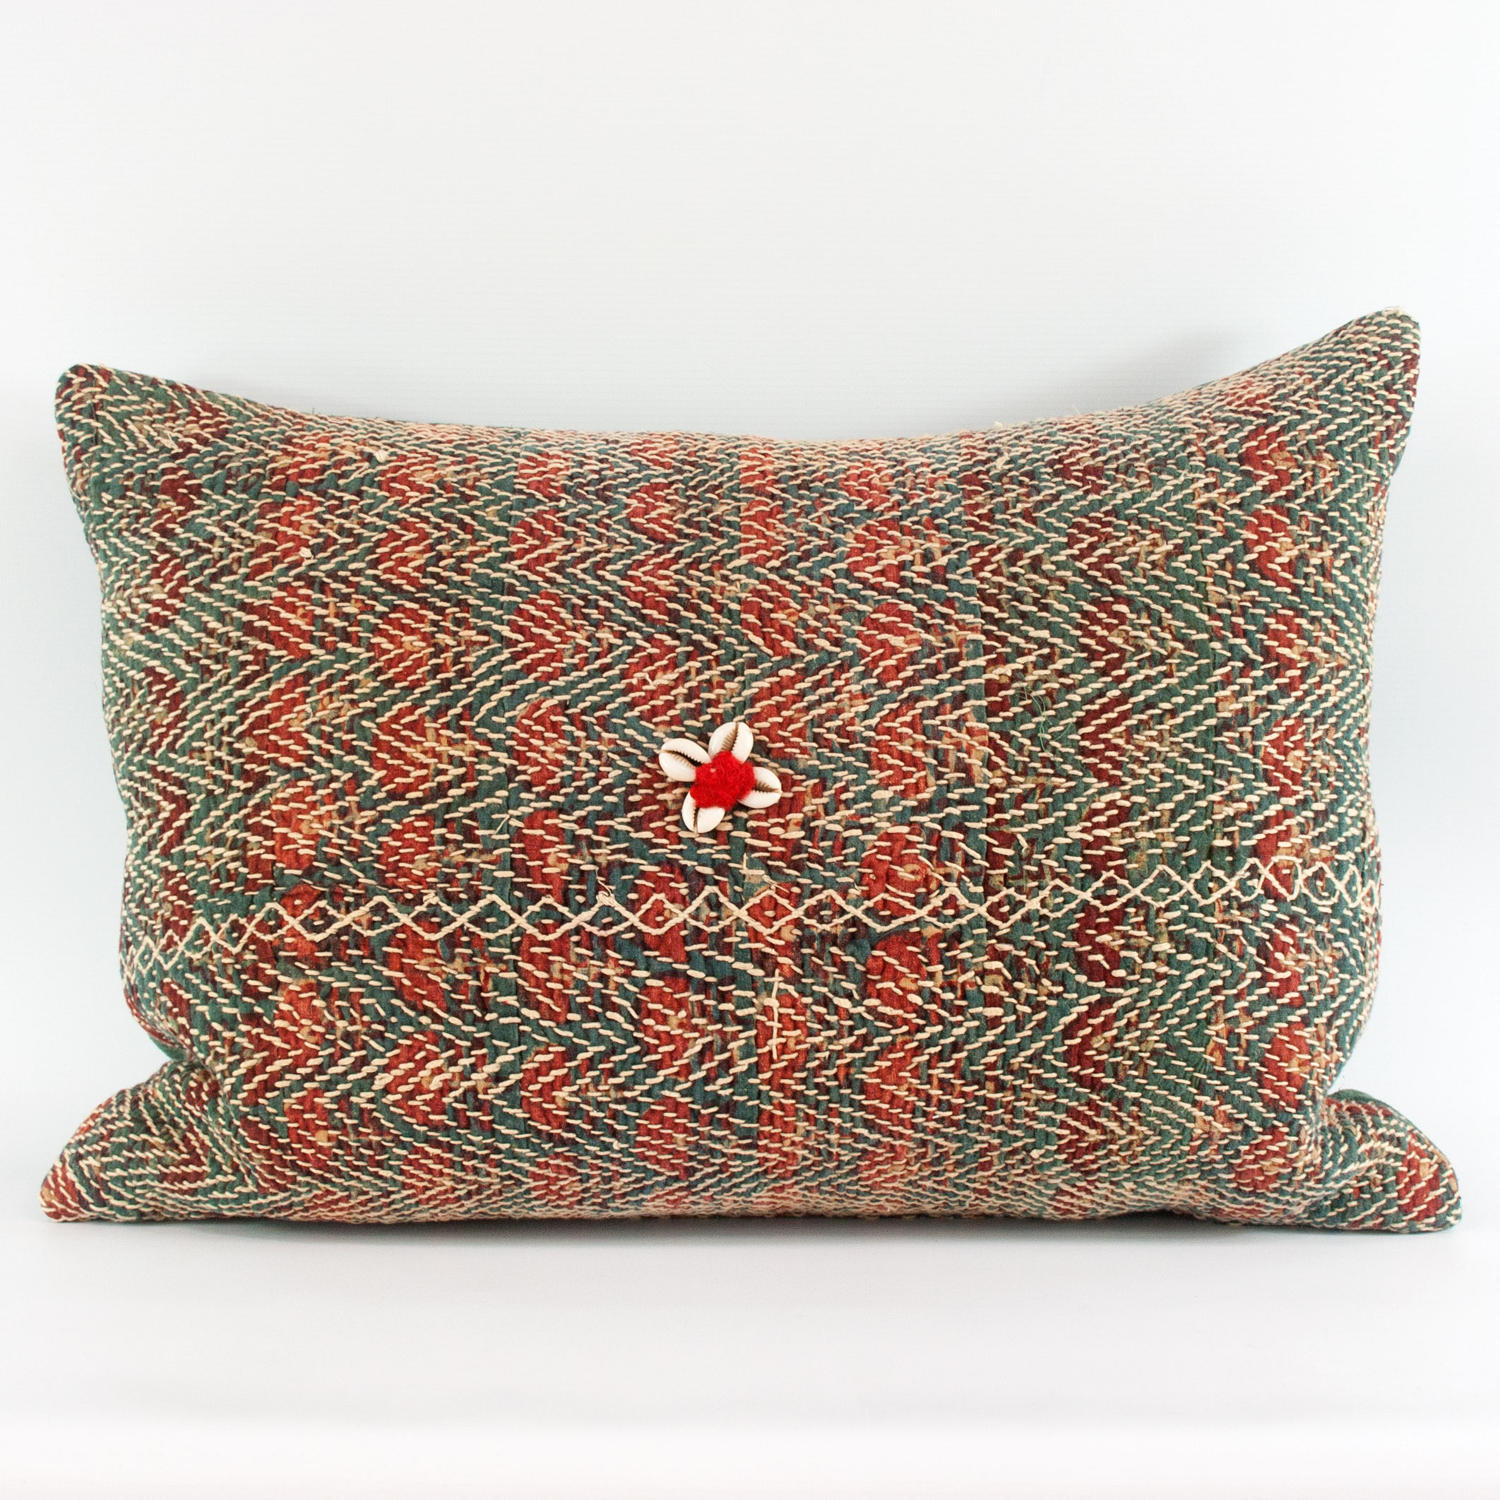 Banjara Cushions - Green